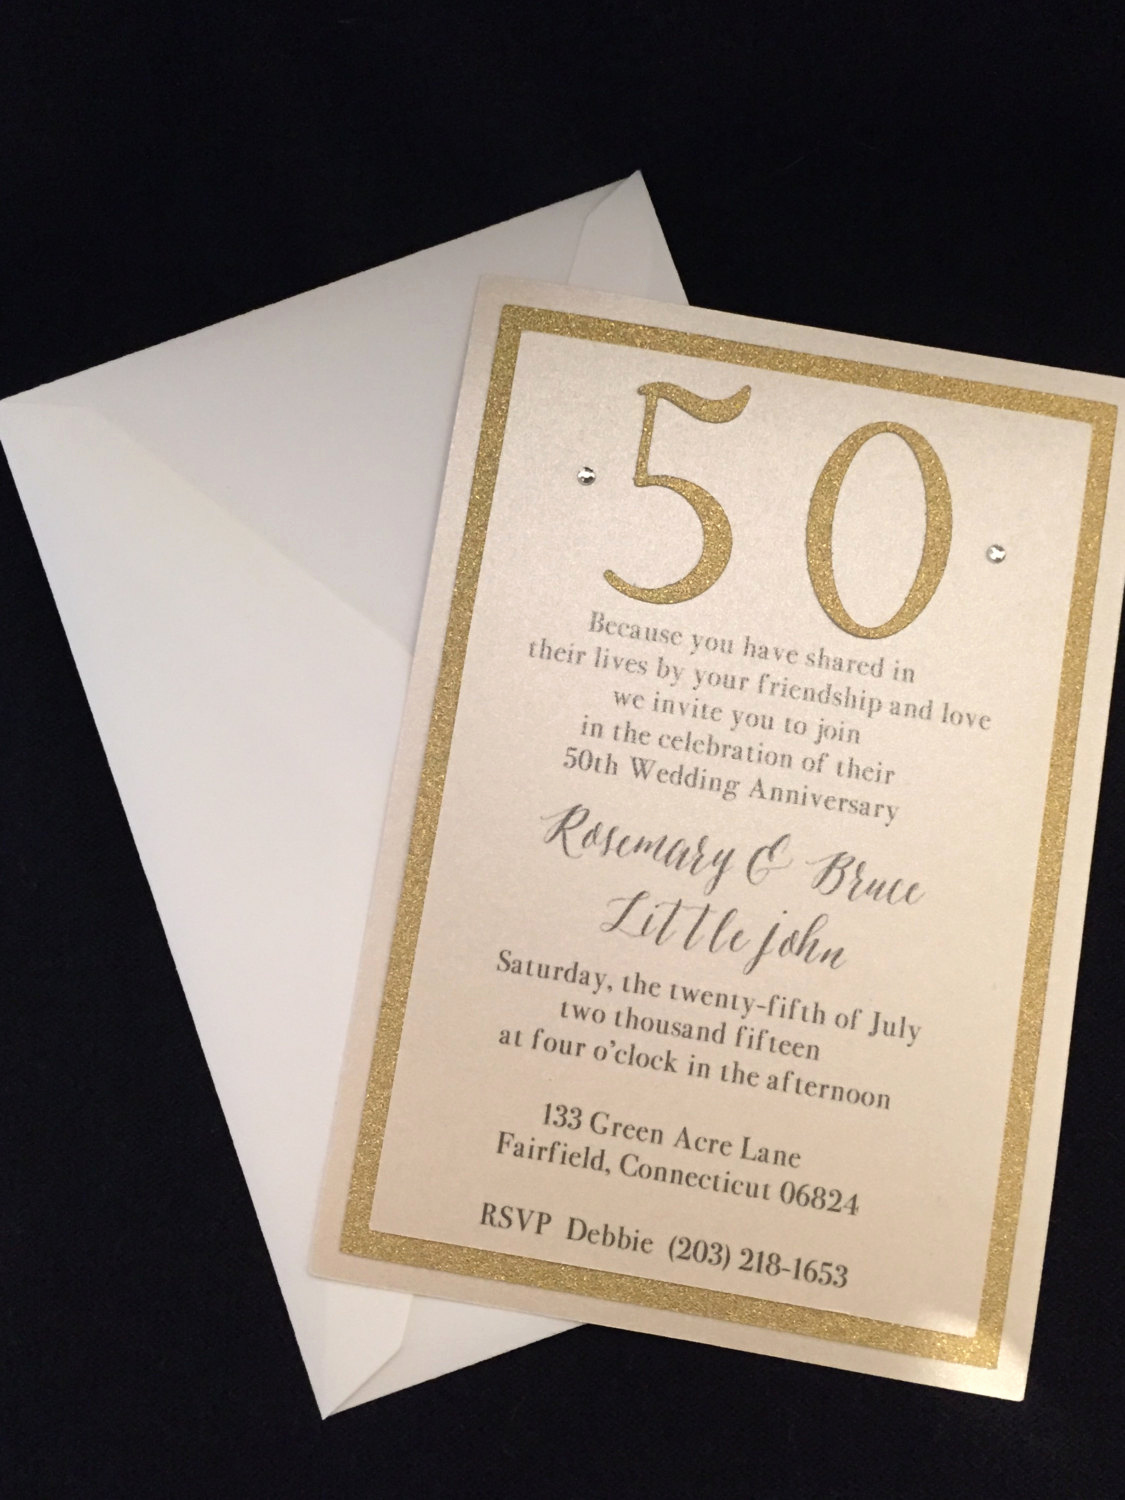 50th Wedding Anniversary Invitation Best Of 50th Wedding Anniversary Invitation